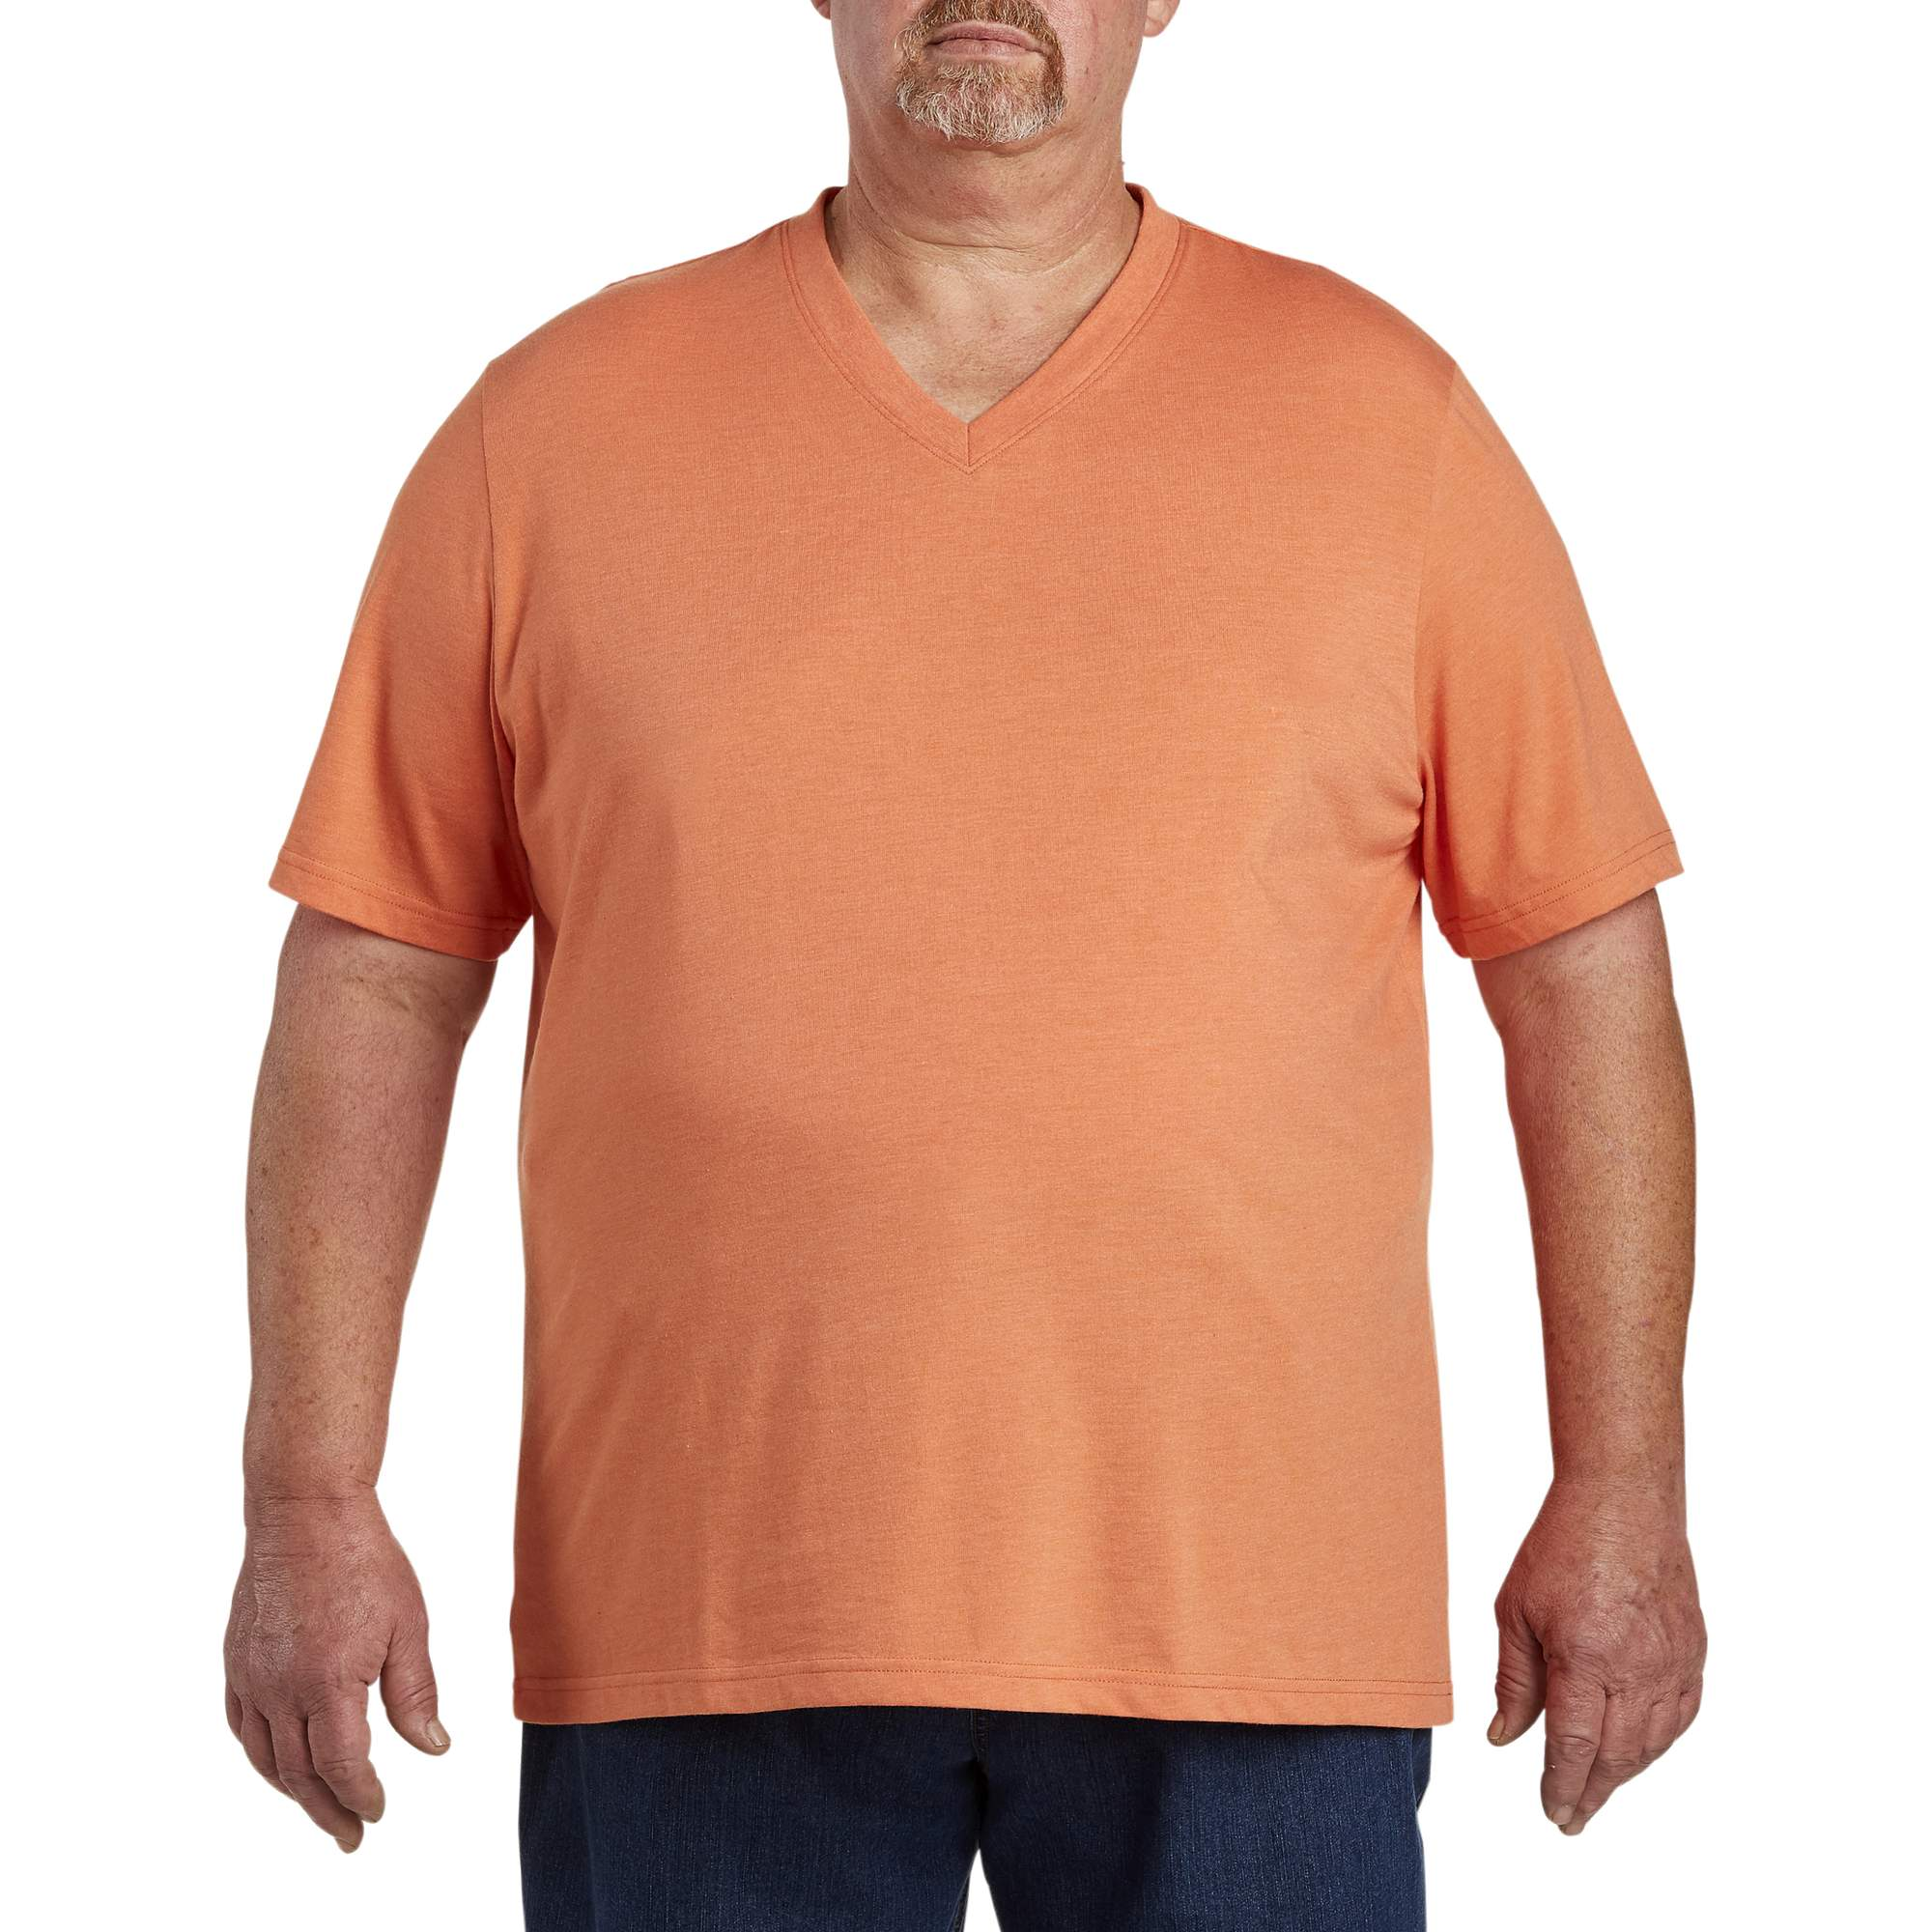 Image of 555 Turnpike Men's Big & Tall Wicking Jersey V Neck Tee